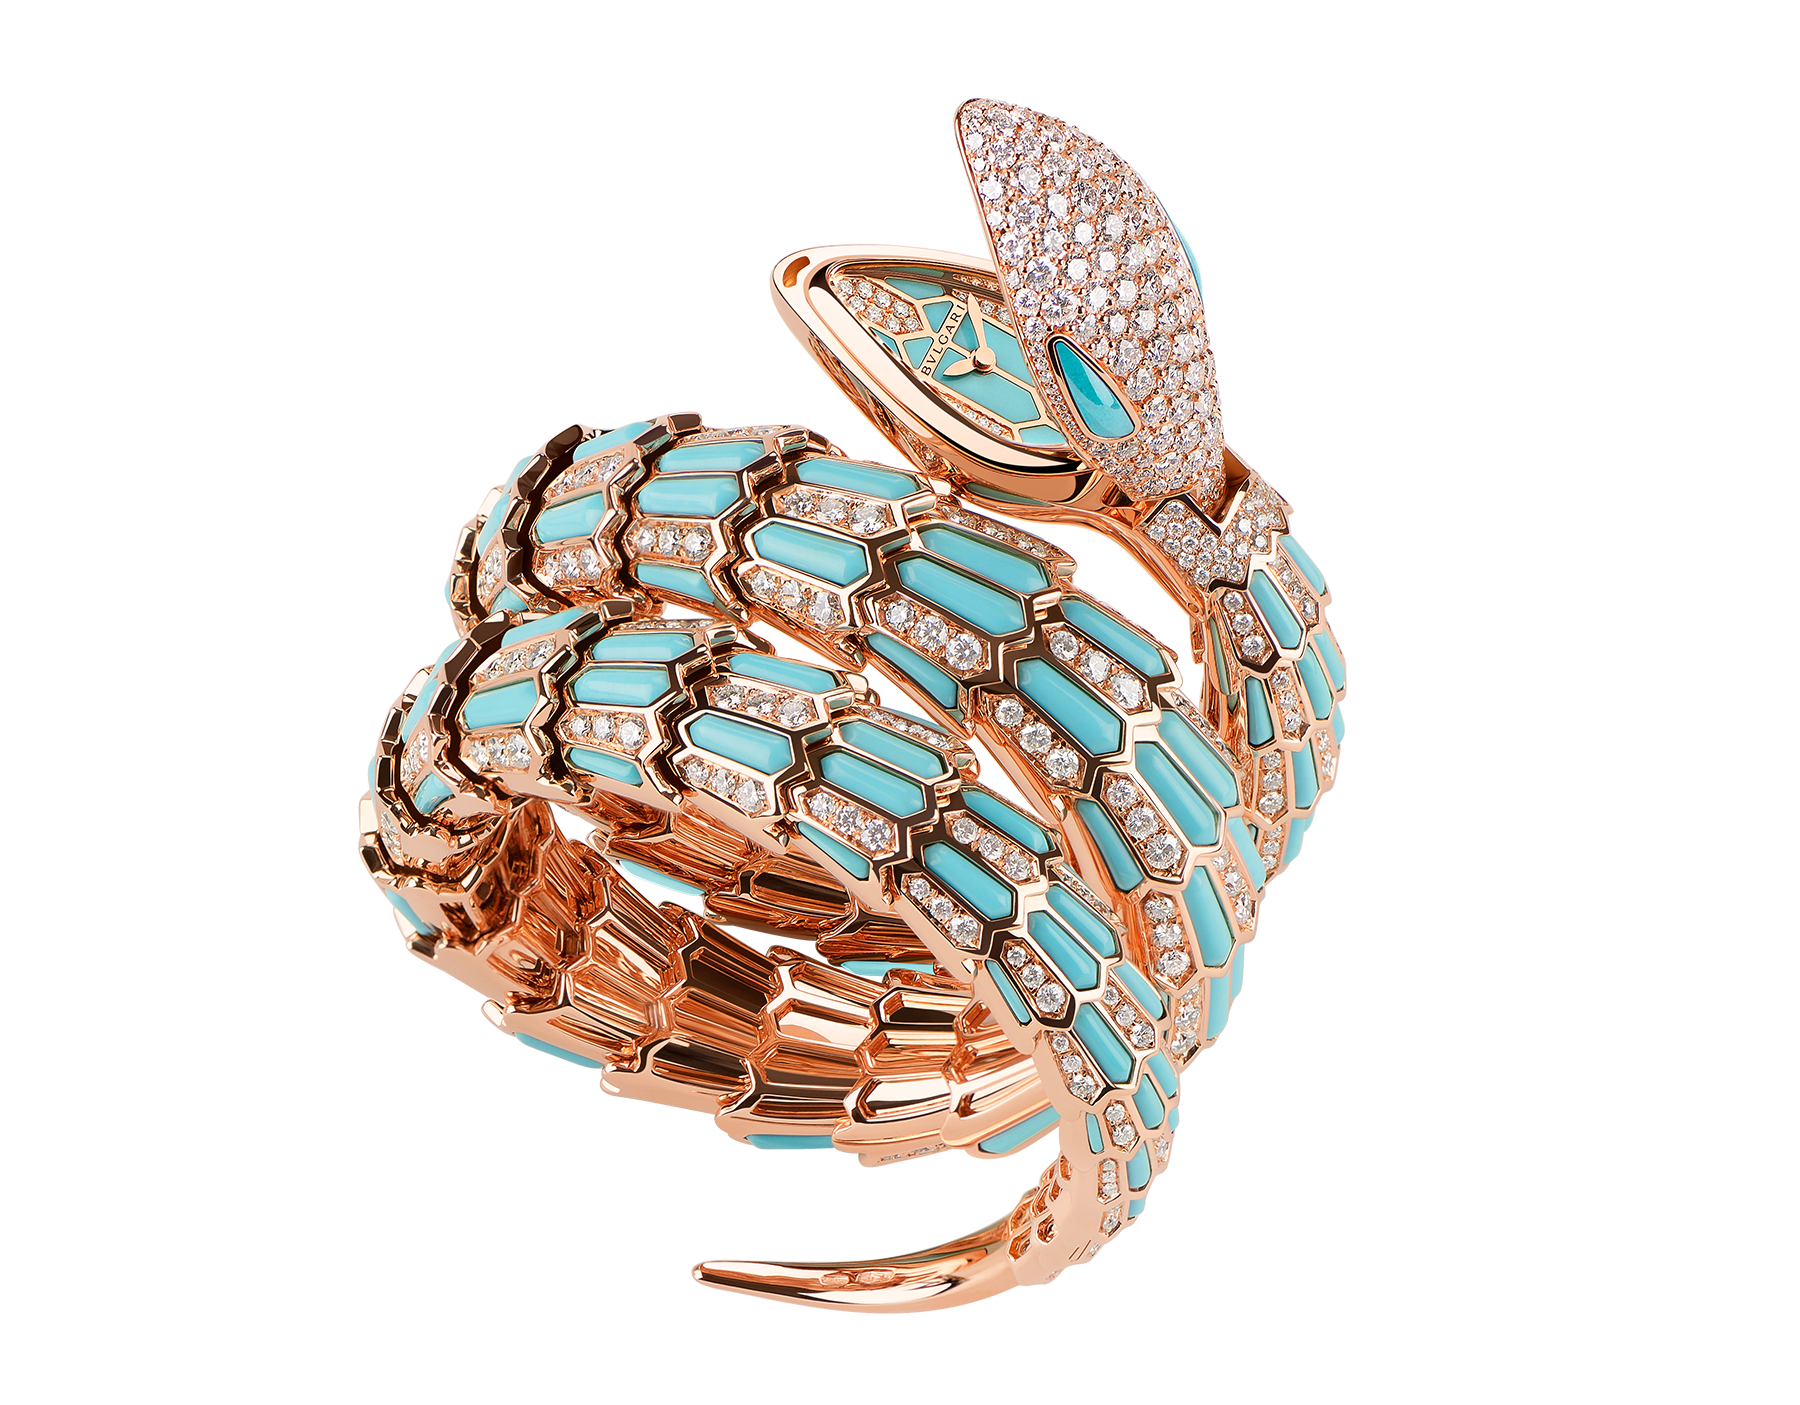 Serpenti Secret Watch with 18 kt rose gold head set with brilliant cut diamonds and turquoise eyes, 18 kt rose gold case, 18 kt rose gold dial and double spiral bracelet, both set with brilliant cut diamonds and turquoises. 102142 image 1